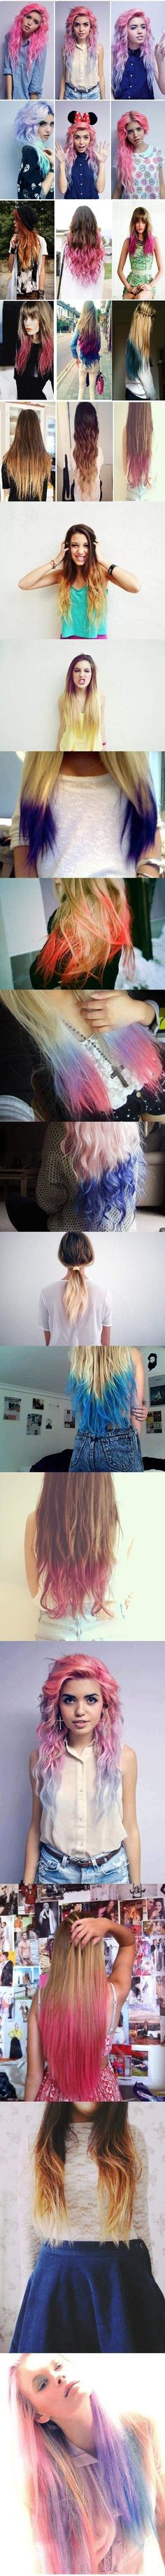 ombre colors <3